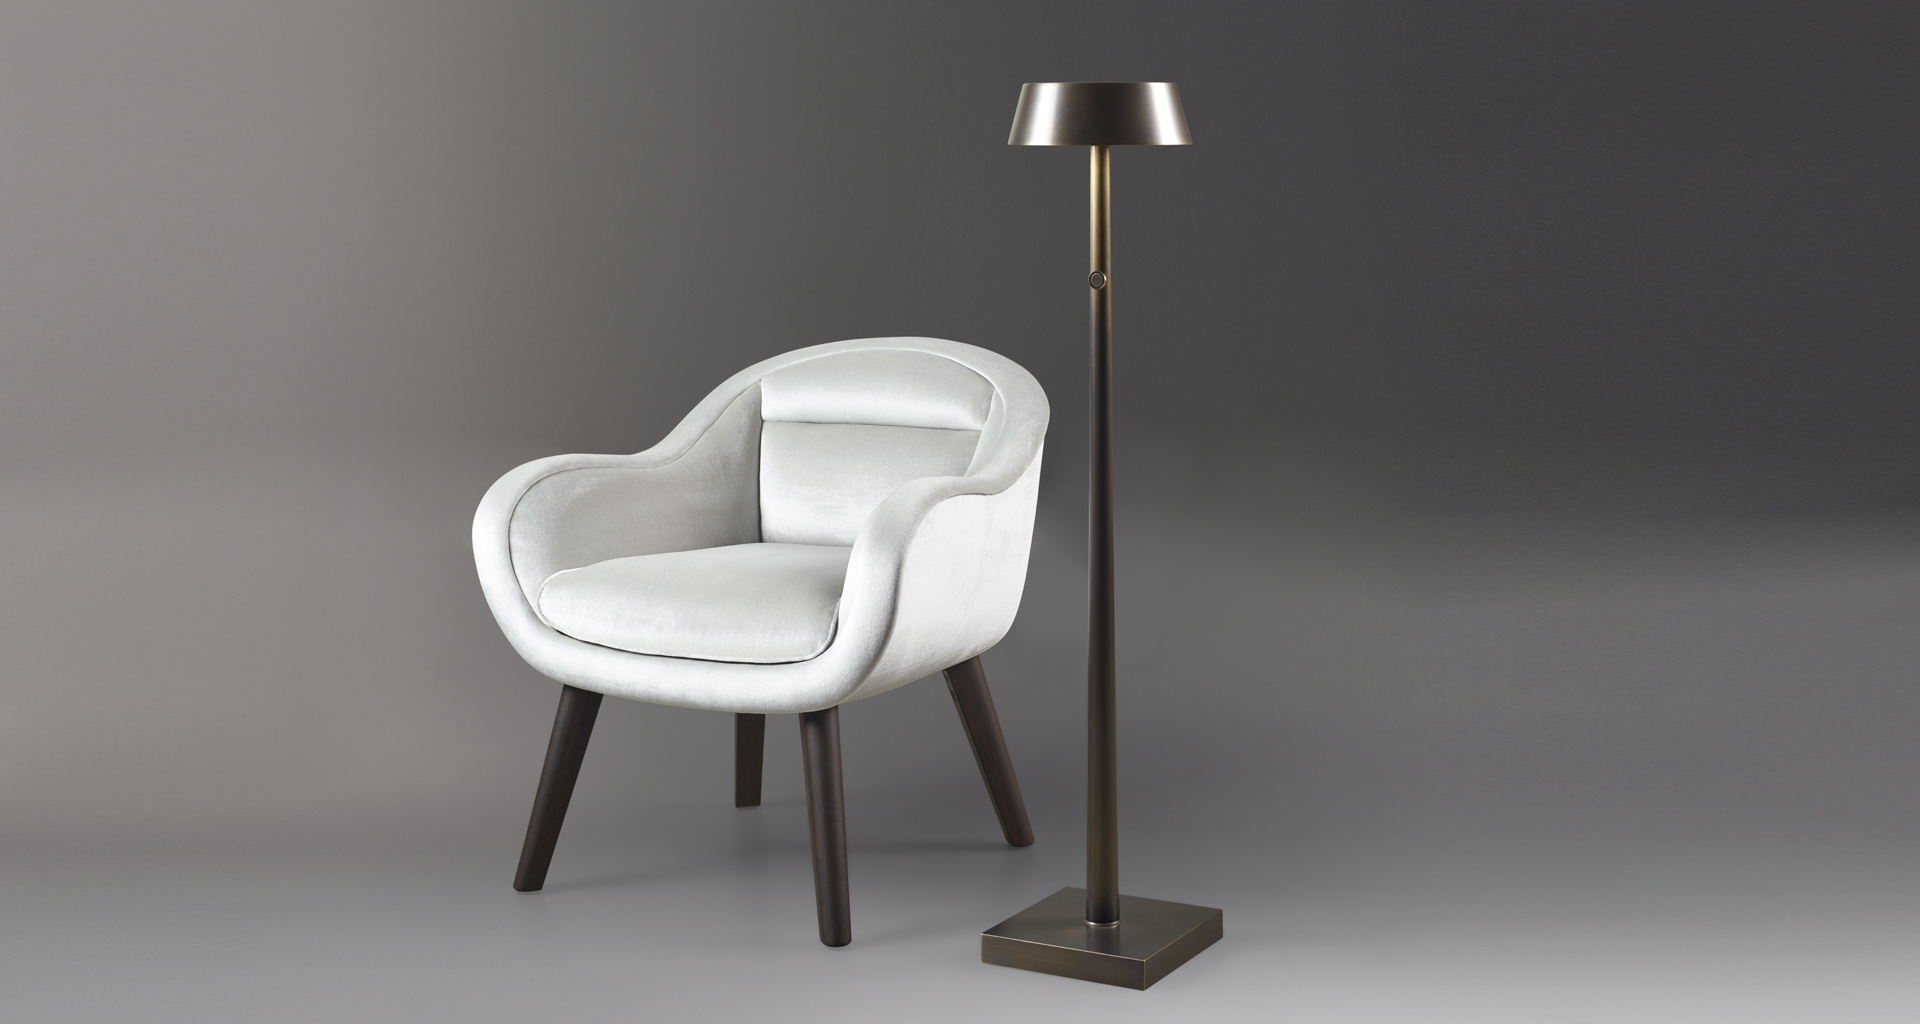 Fiammetta is a floor and table LED lamp in metal portable and wireless, from Promemoria's catalogue | Promemoria